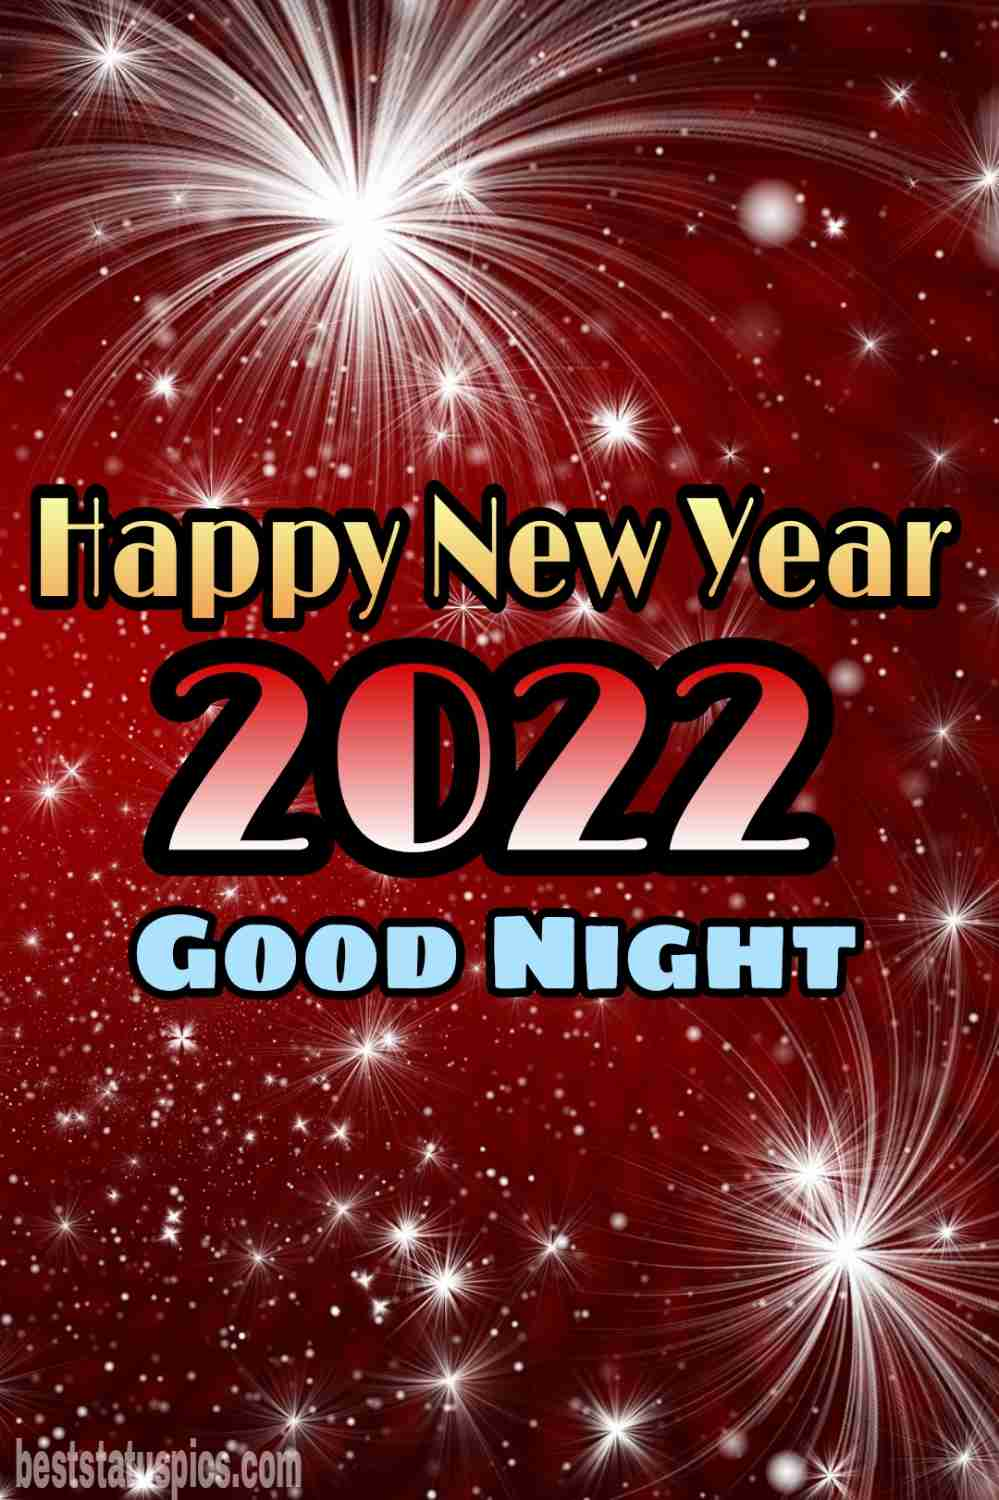 Happy new year 2022 and Good night HD images with fireworks for Instagram and Whatsapp story